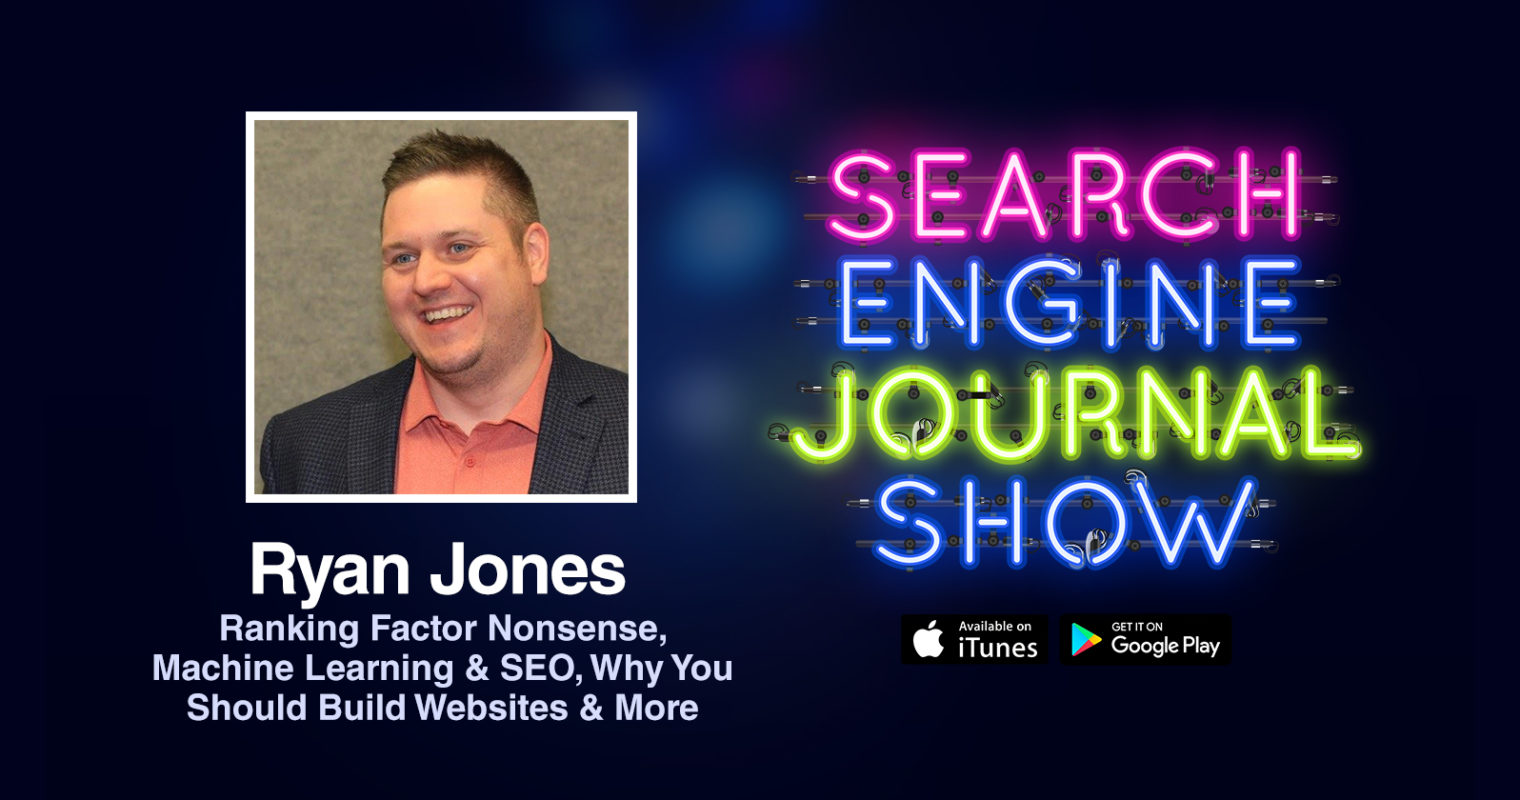 Ryan Jones on Ranking Factor Nonsense, Machine Learning & SEO, Why You Should Build Websites & More [PODCAST]